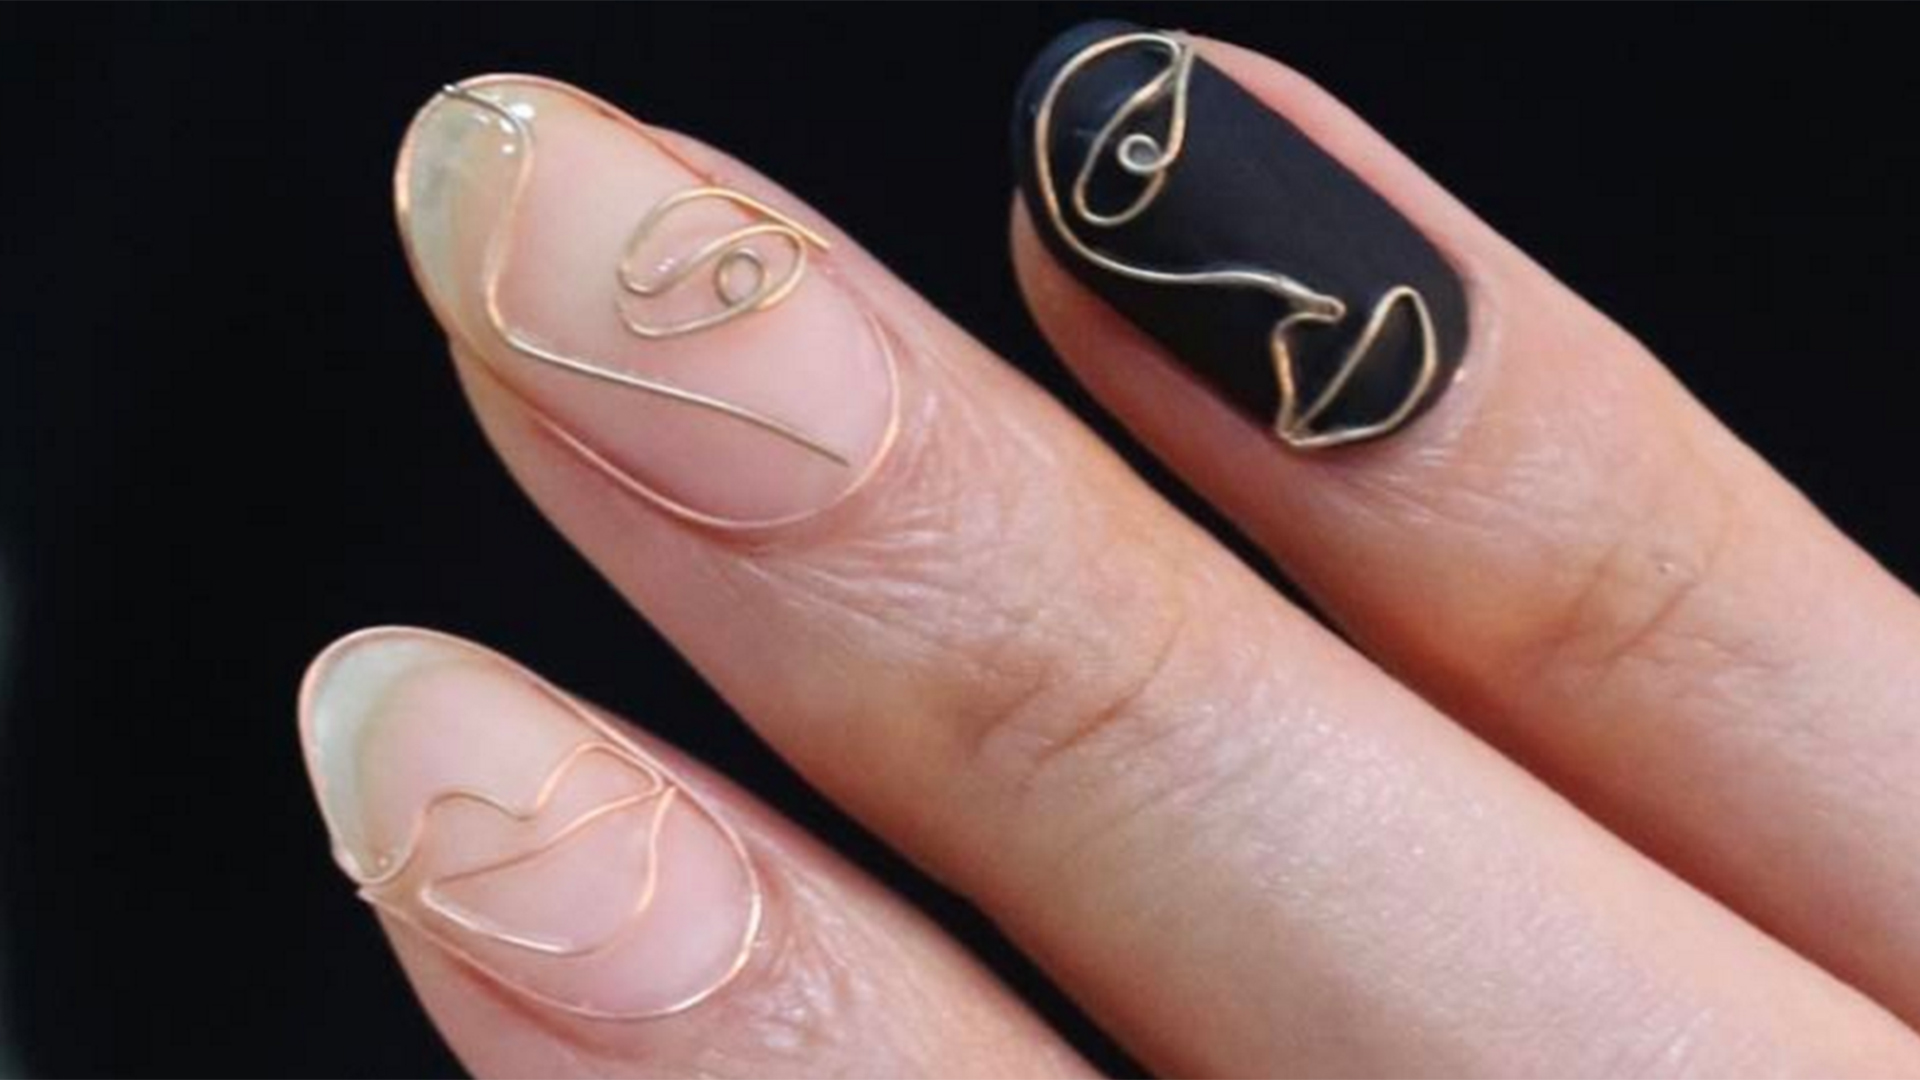 Wire nails\' are the hottest new nail trend on Instagram